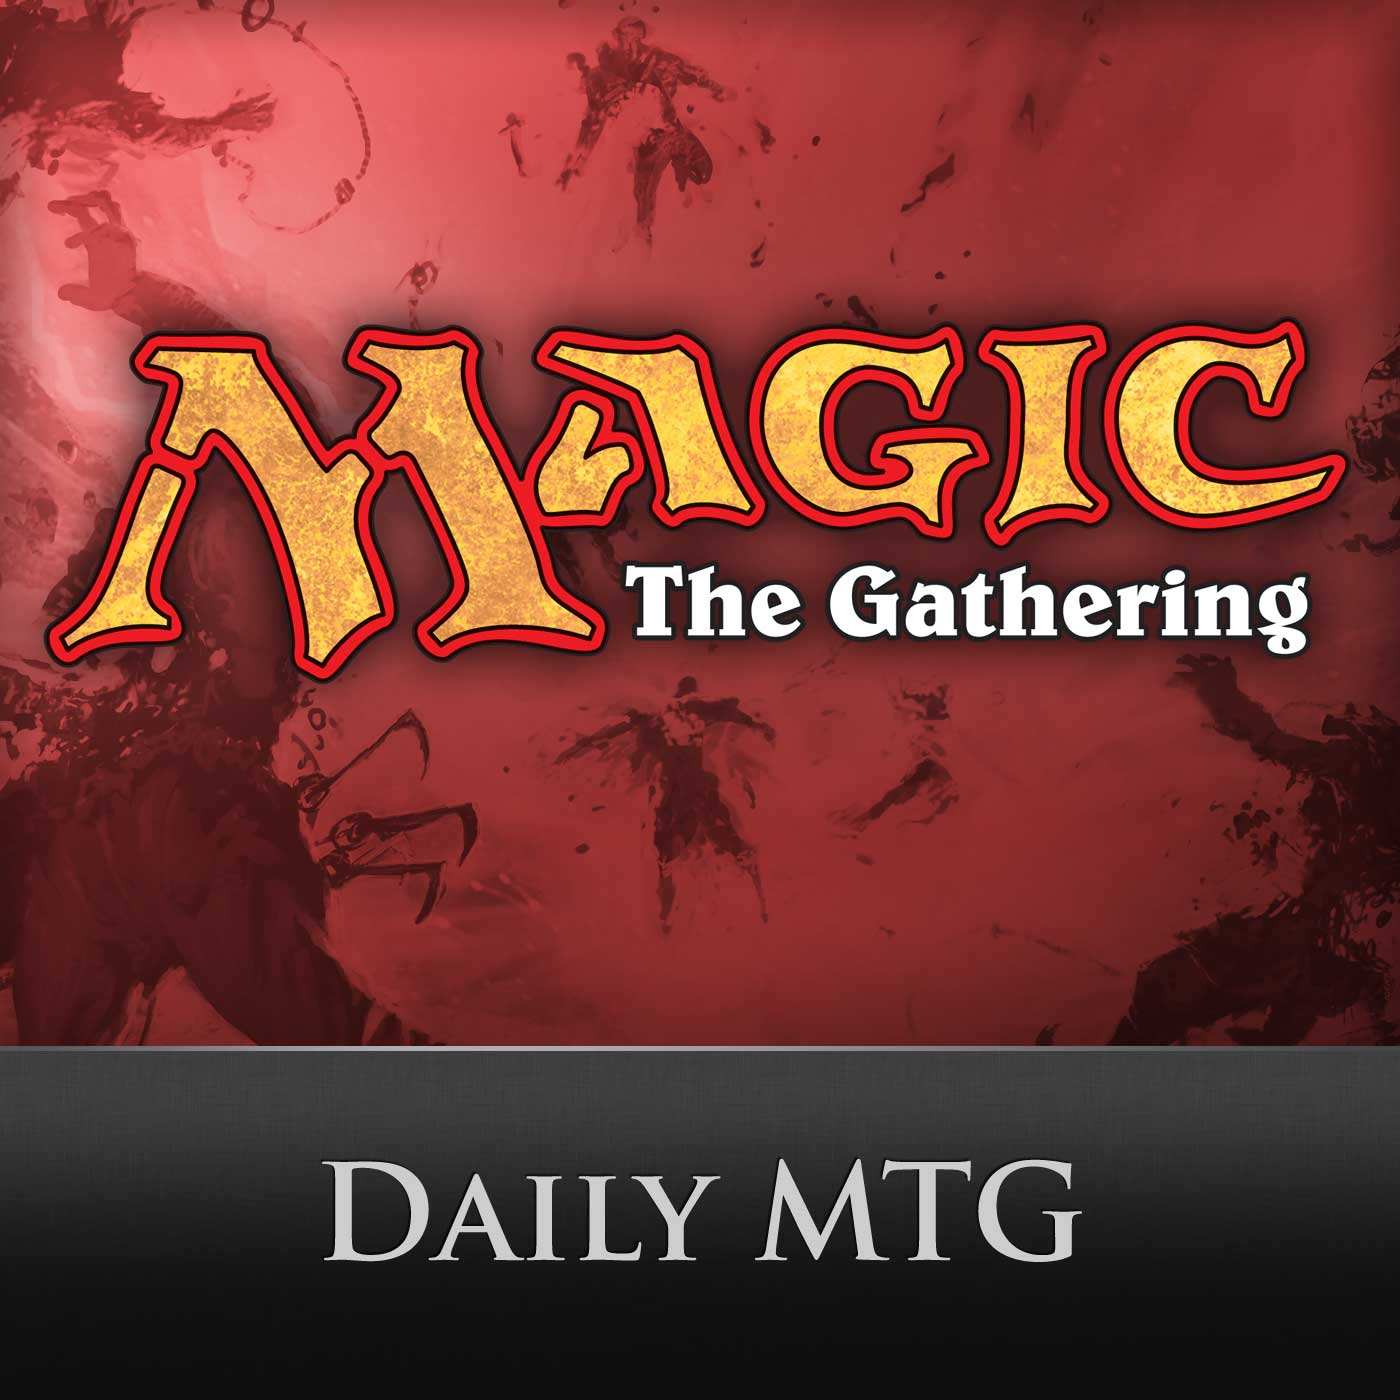 Daily MTG Ep. 19: Pax, Theros, and Hero's Path